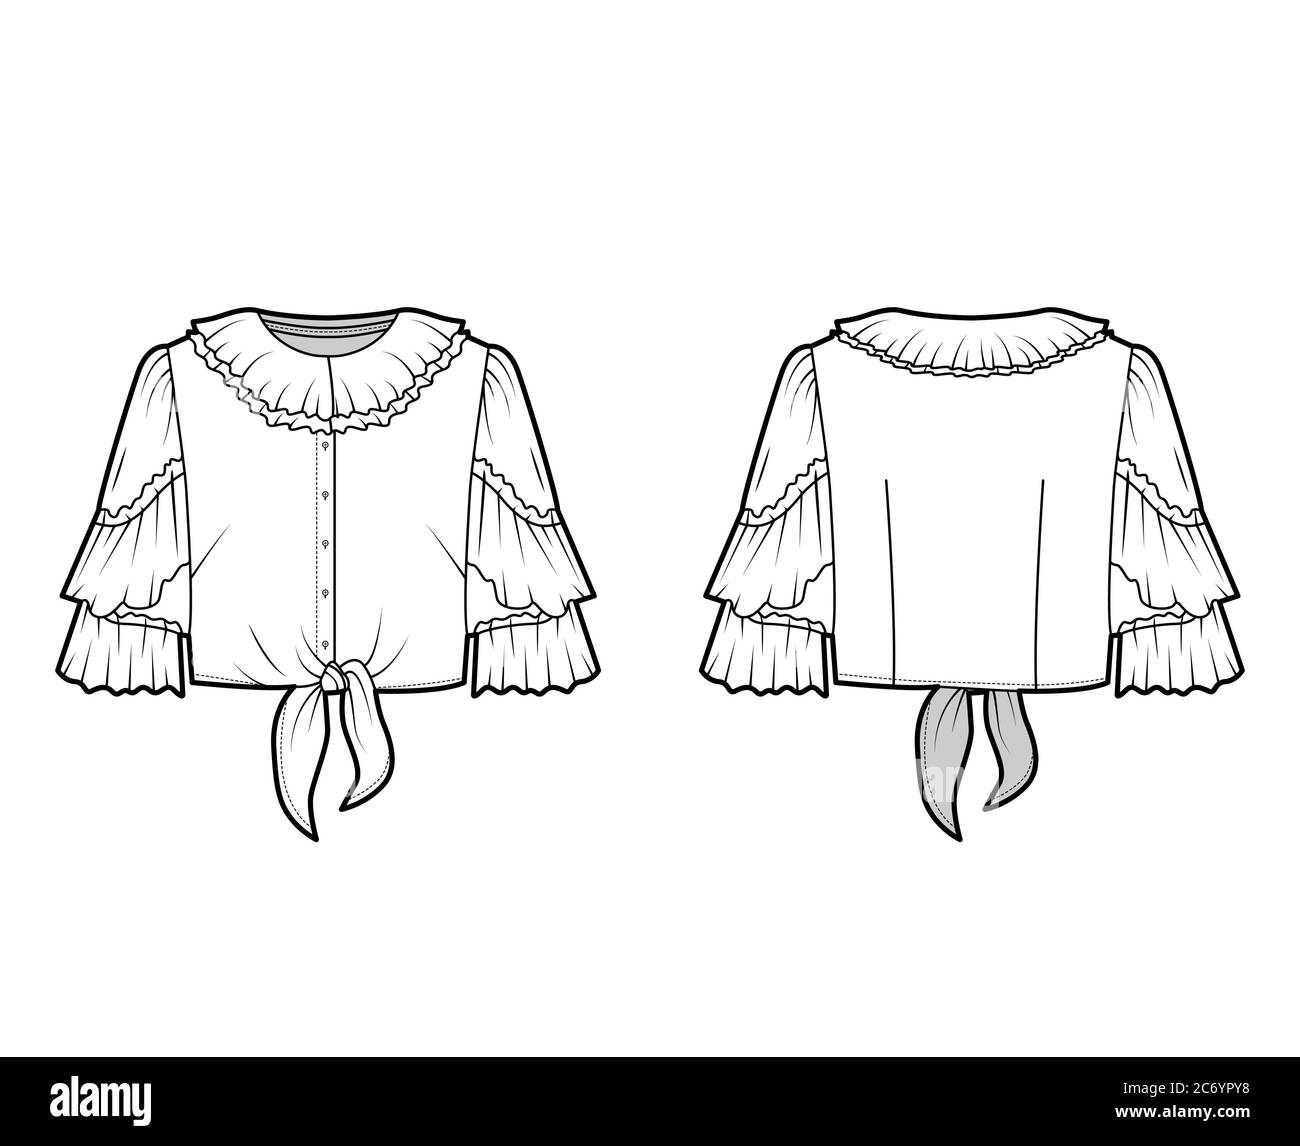 Cropped Tie Front Blouse Technical Fashion Illustration With Ruffled Collar And Sleeves Front Button Fastening Flat Apparel Shirt Template Front Back White Color Women Men And Unisex Cad Mockup Stock Vector Image